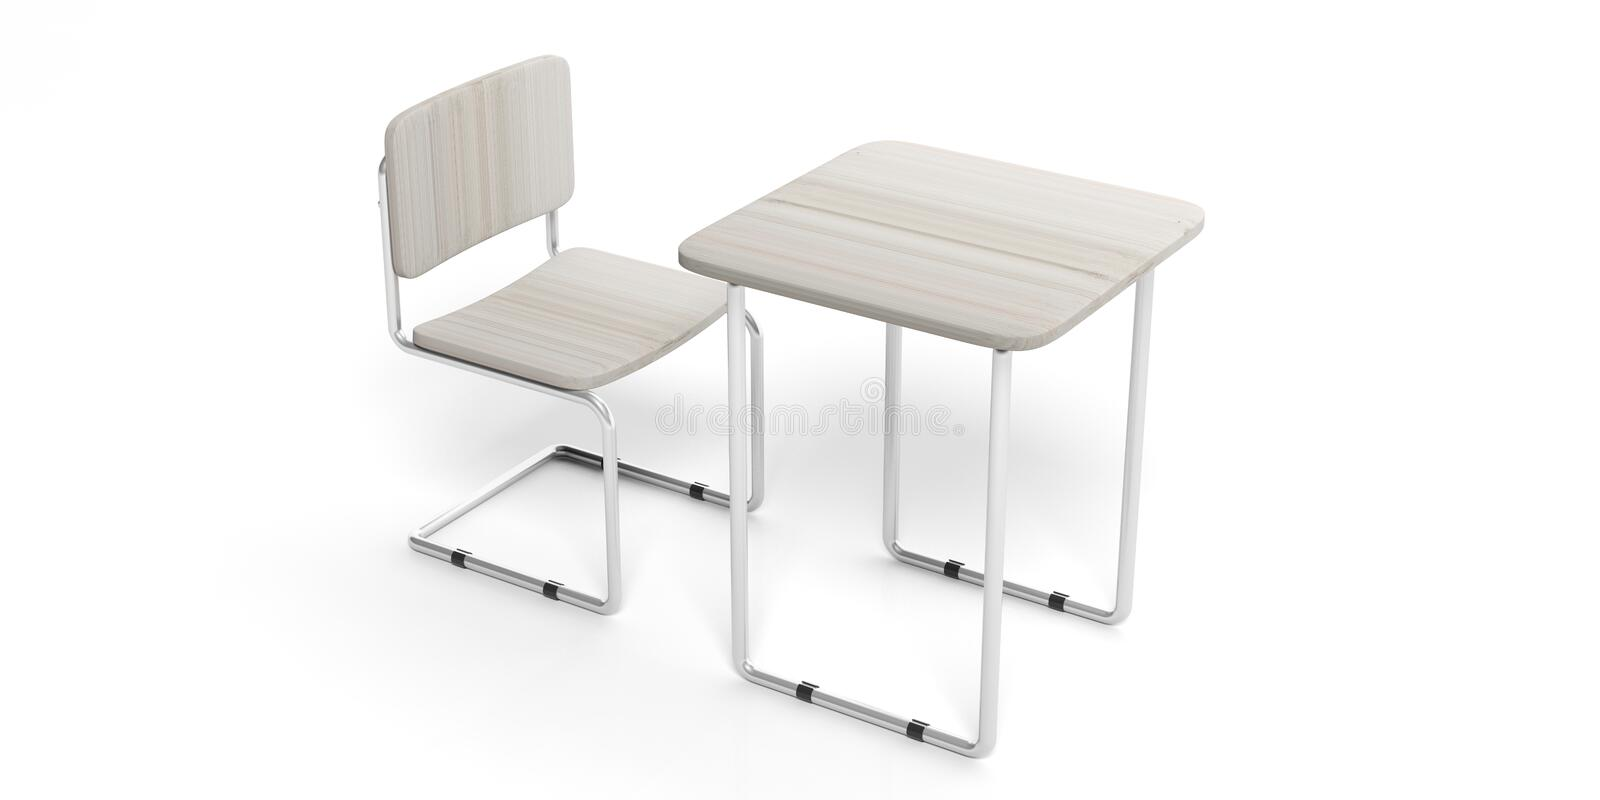 Education concept. White student desk and chair, isolated against white background, cutout vector illustration